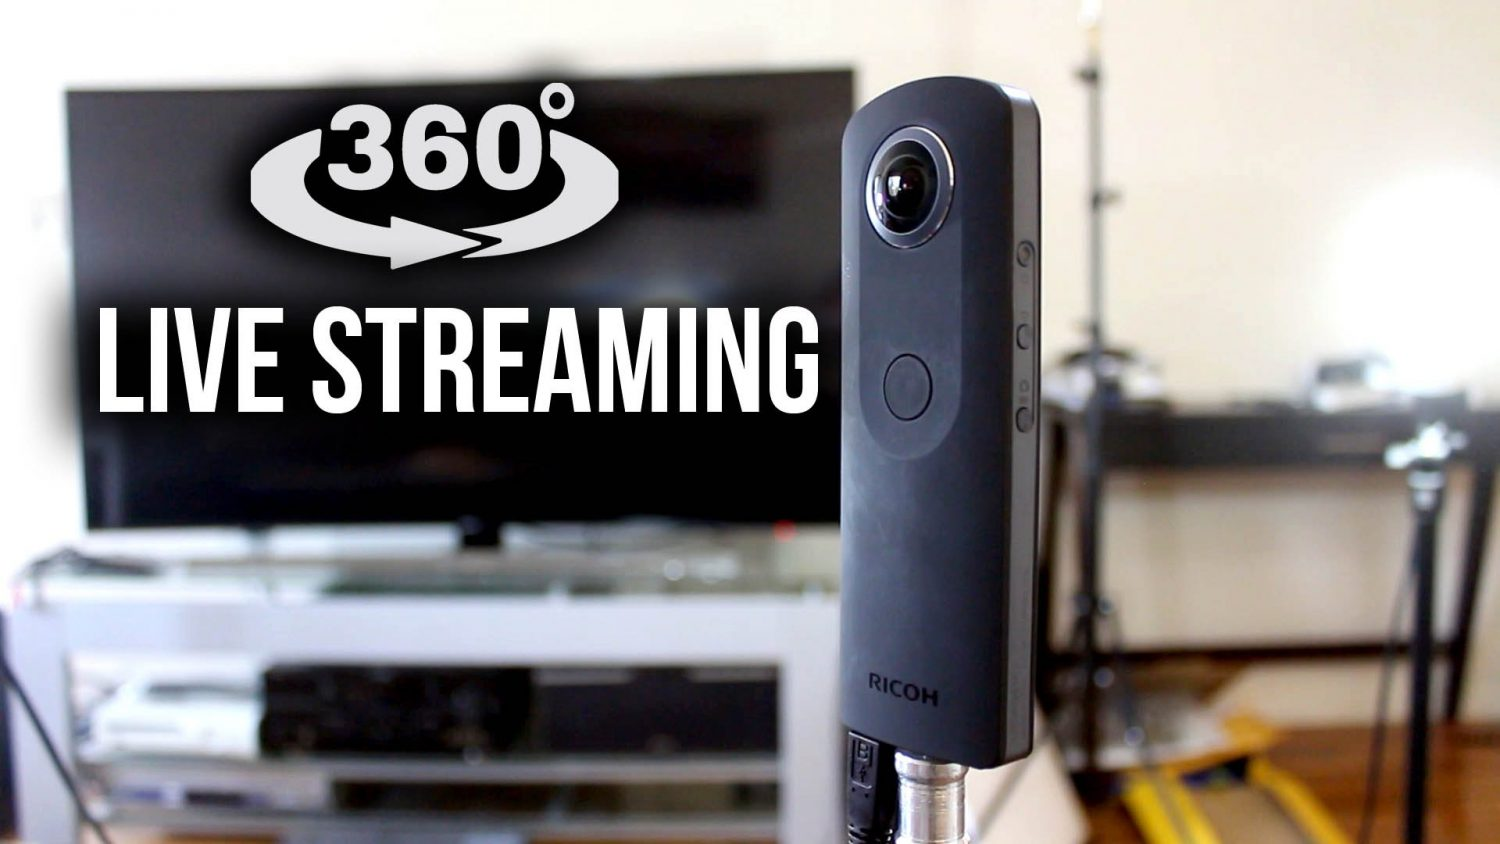 Garmin Virb 360 >> Top Livestream Capable 360 Cameras - Livestream 360 video to the world - 360° Camera Reviews and ...